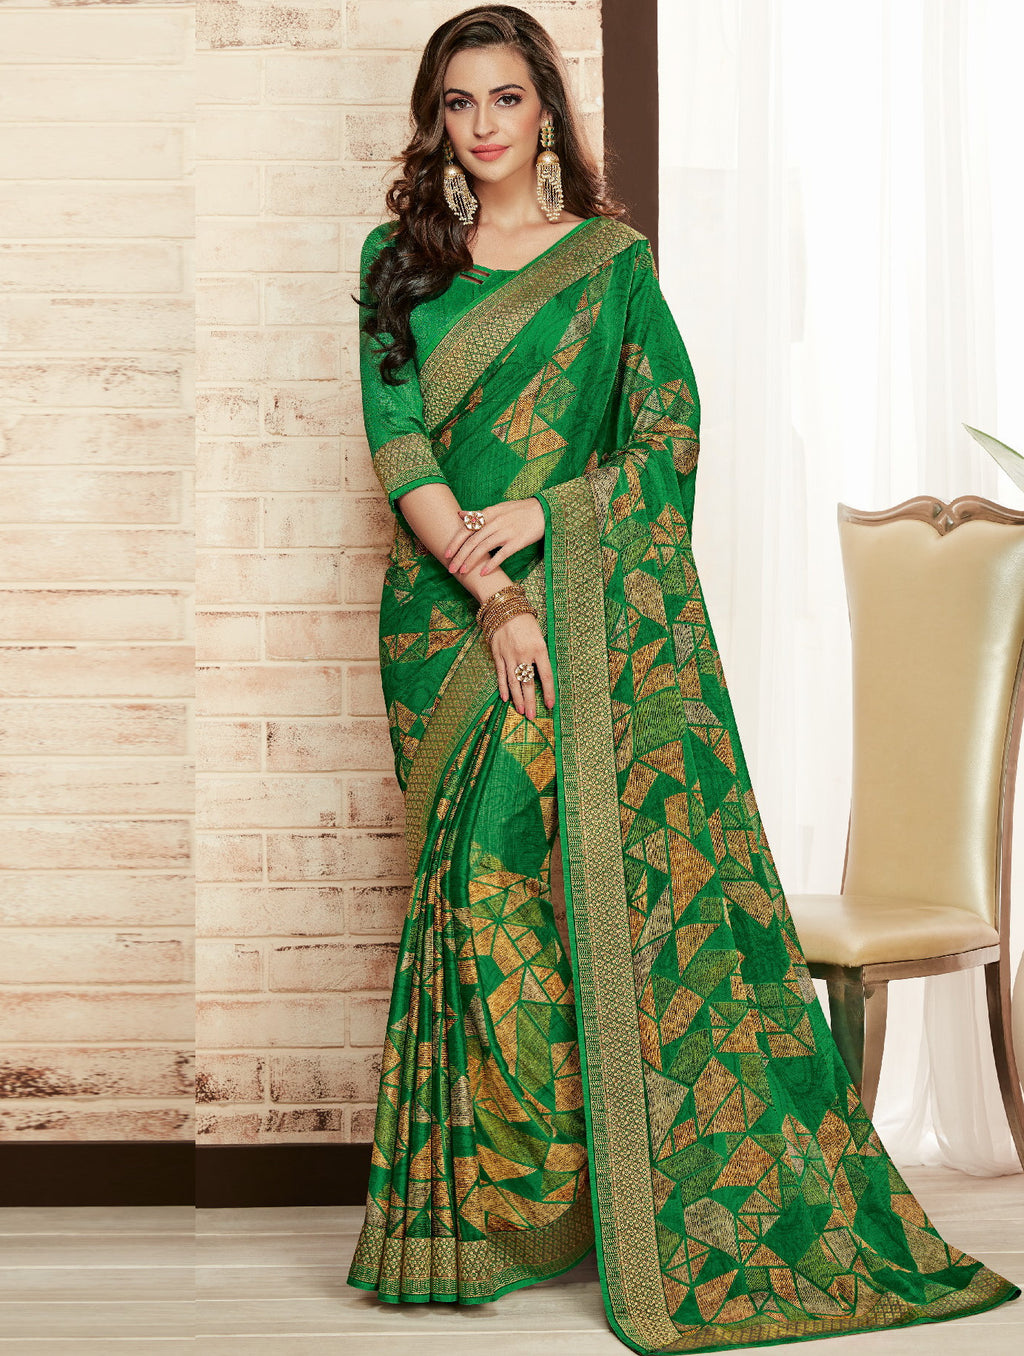 Green Color Chiffon Printed Sarees For Office Wear NYF-5724